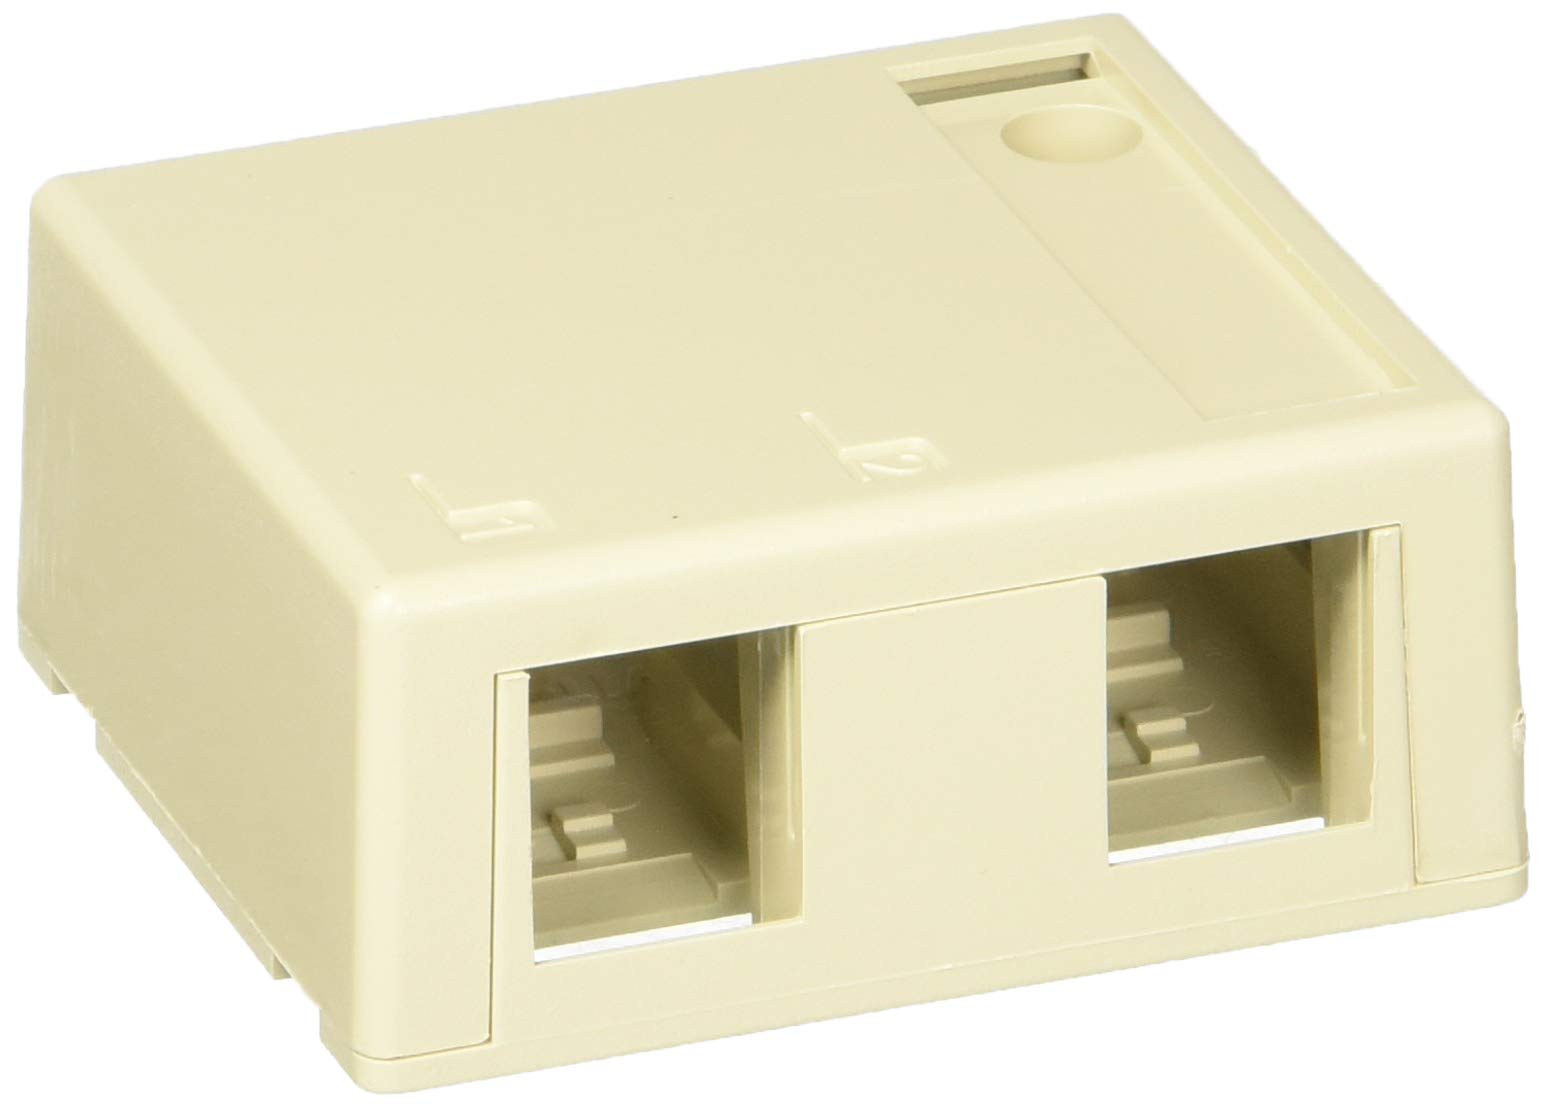 Leviton 41089-2IP Quickport Surface Mount Housing, 2-Port, Includes 1 Blank Quickport Insert, 25-Pack, Ivory